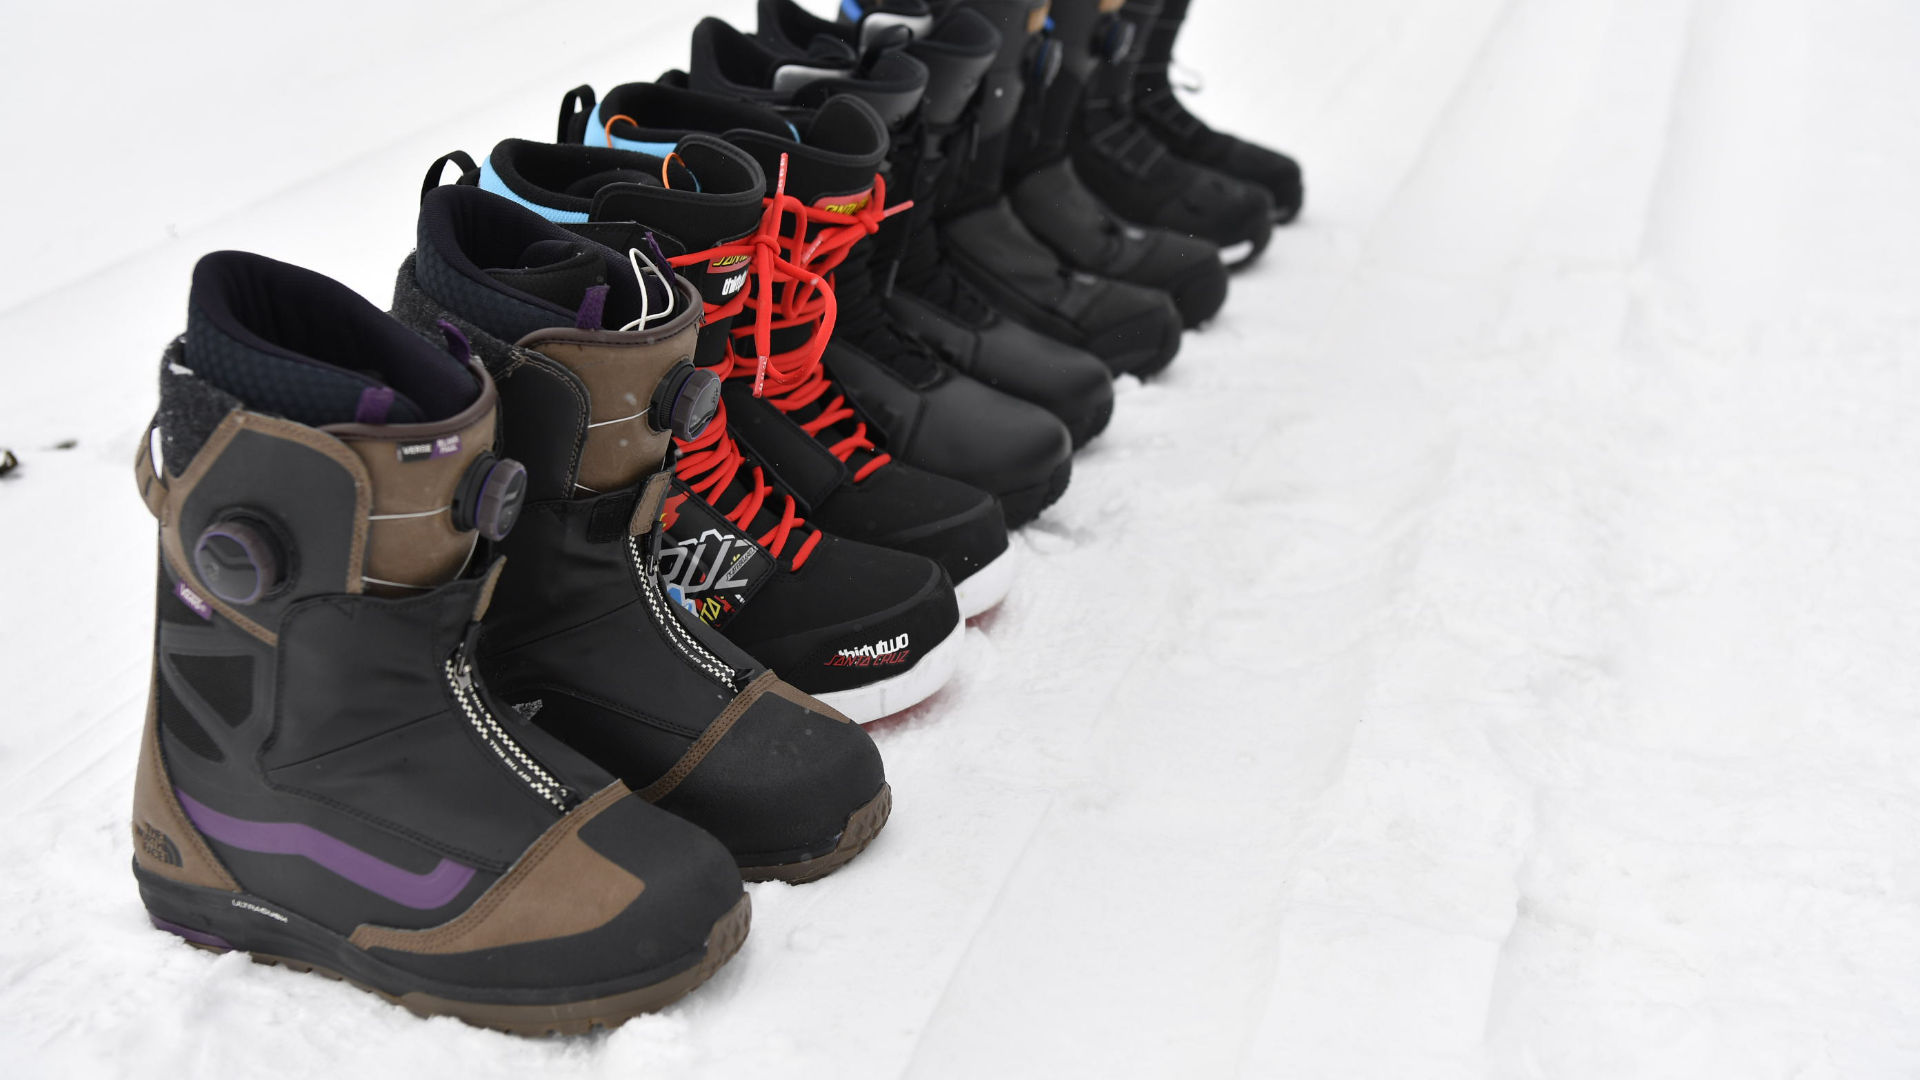 5d2606ad86f7 A selection of snowboard boots from Vans